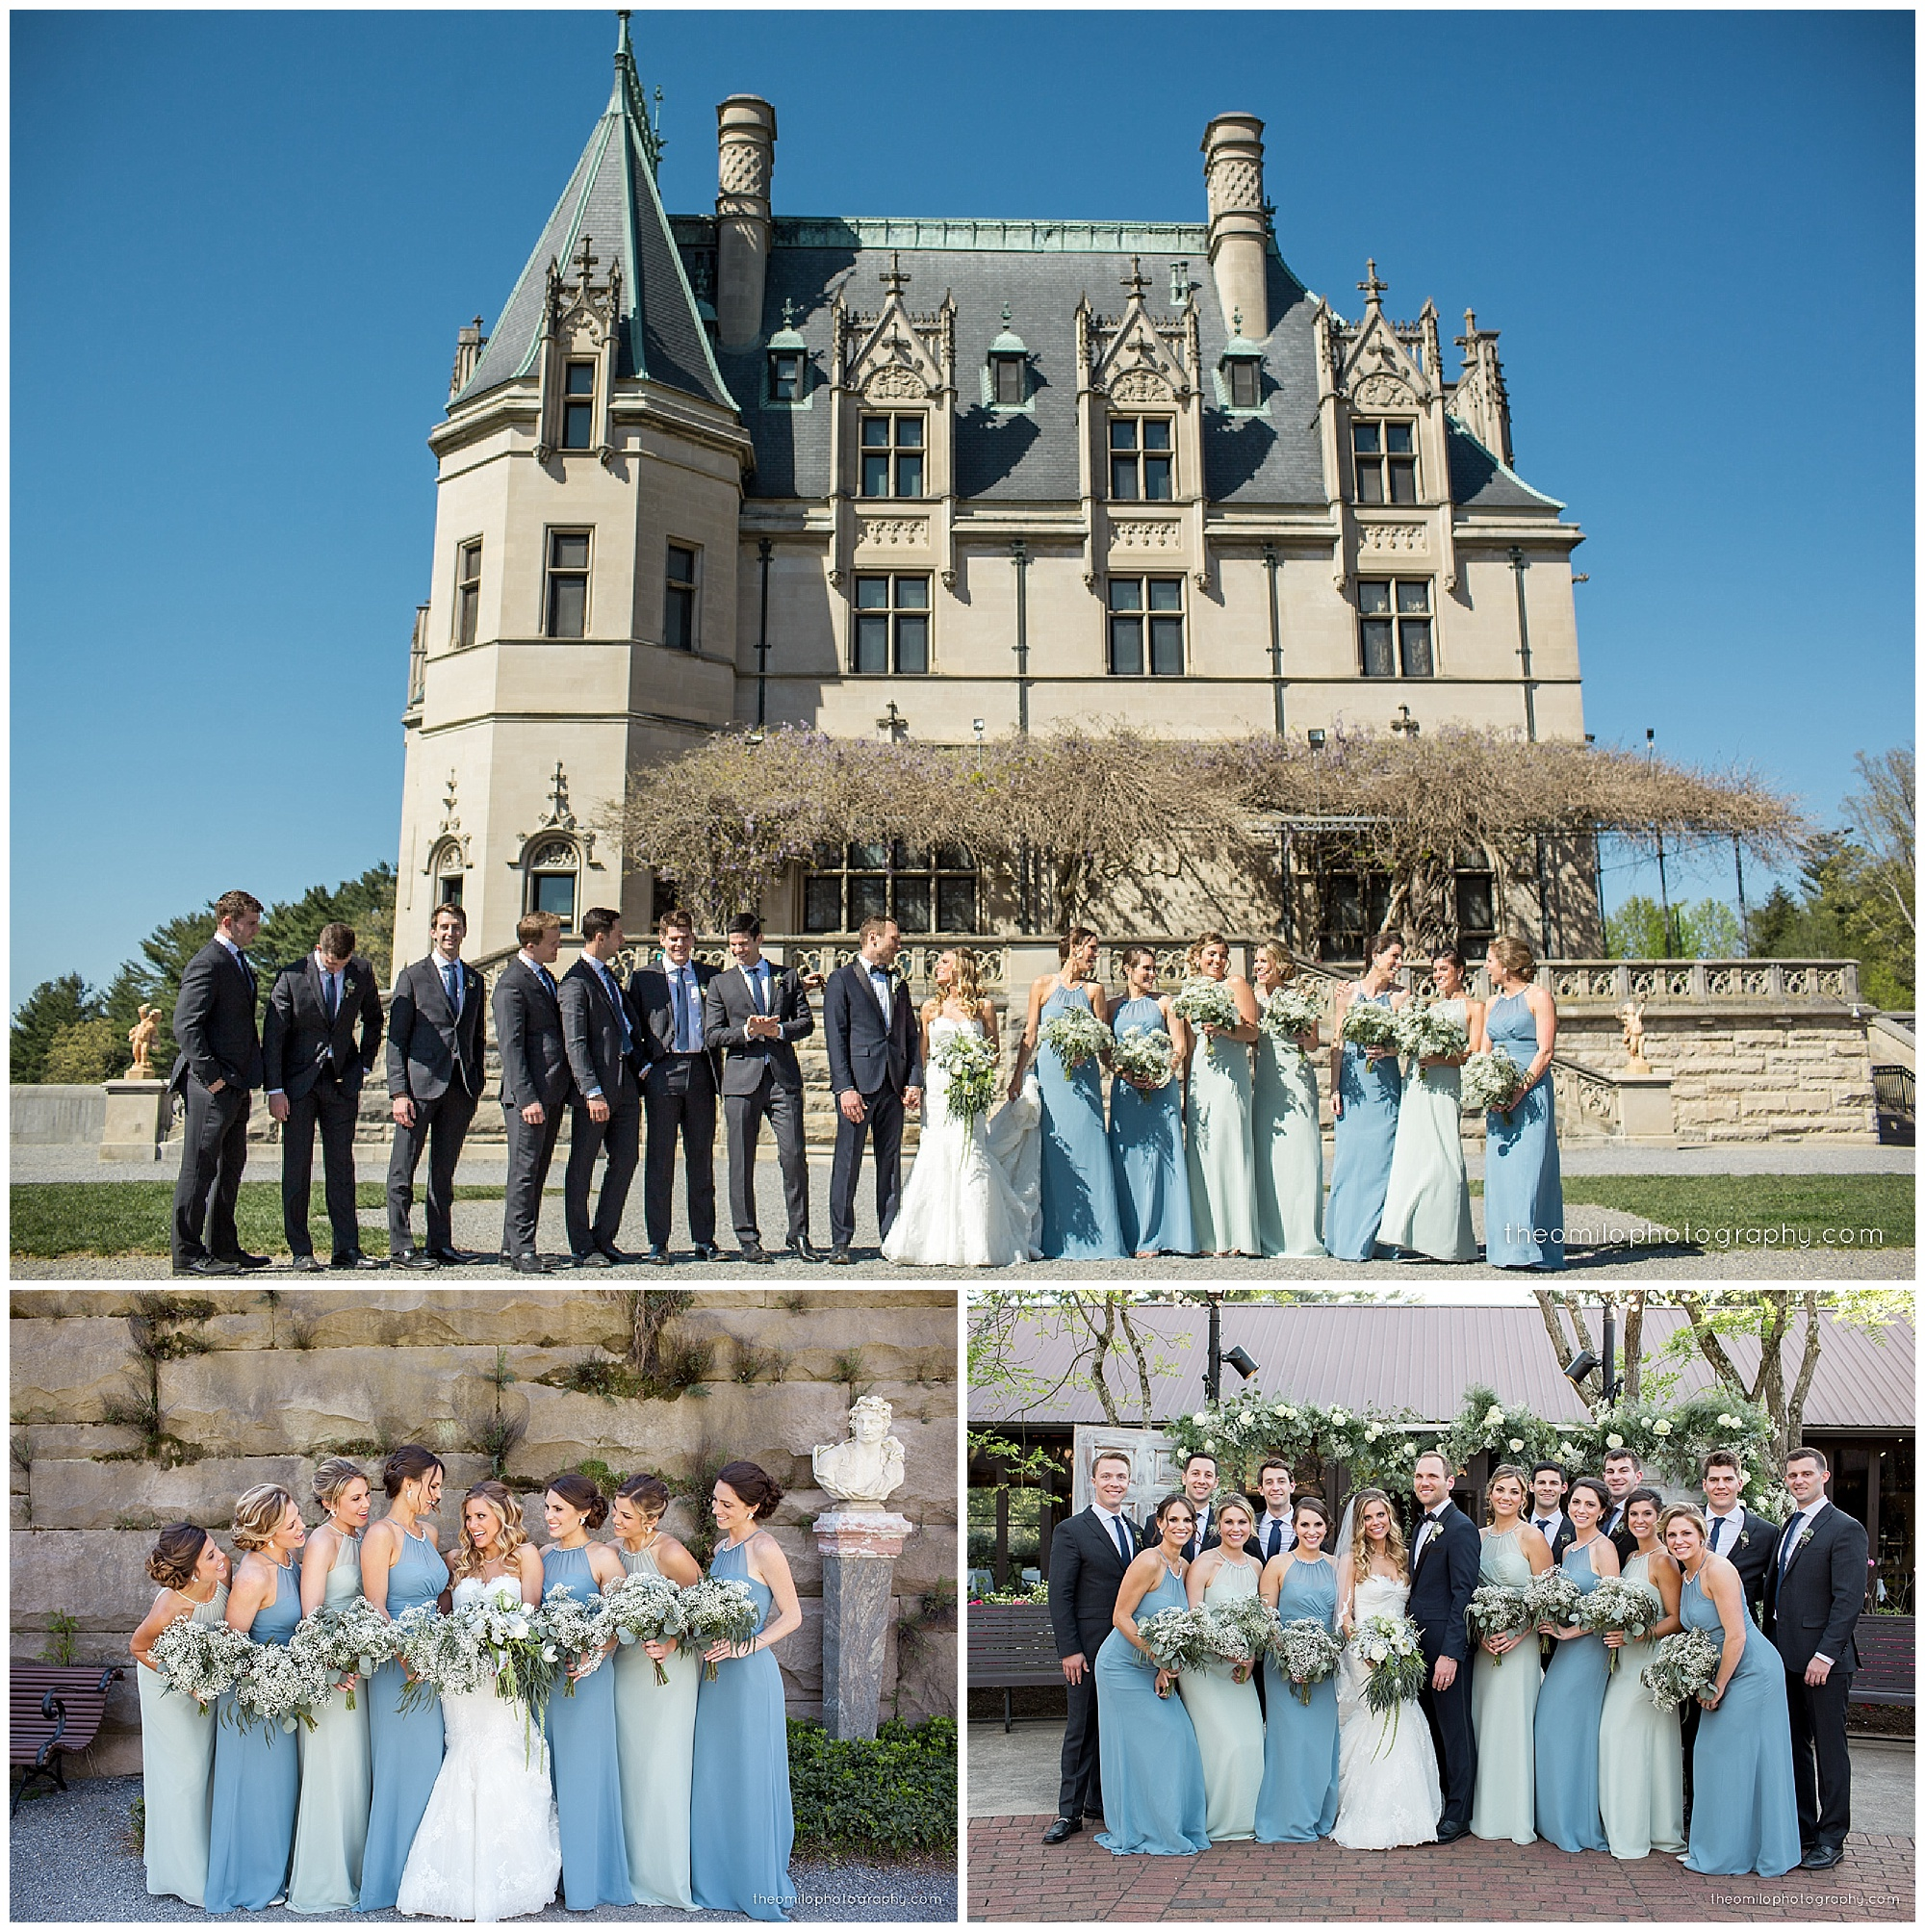 Biltmore Estate Weddings: Biltmore Estate Wedding Planner